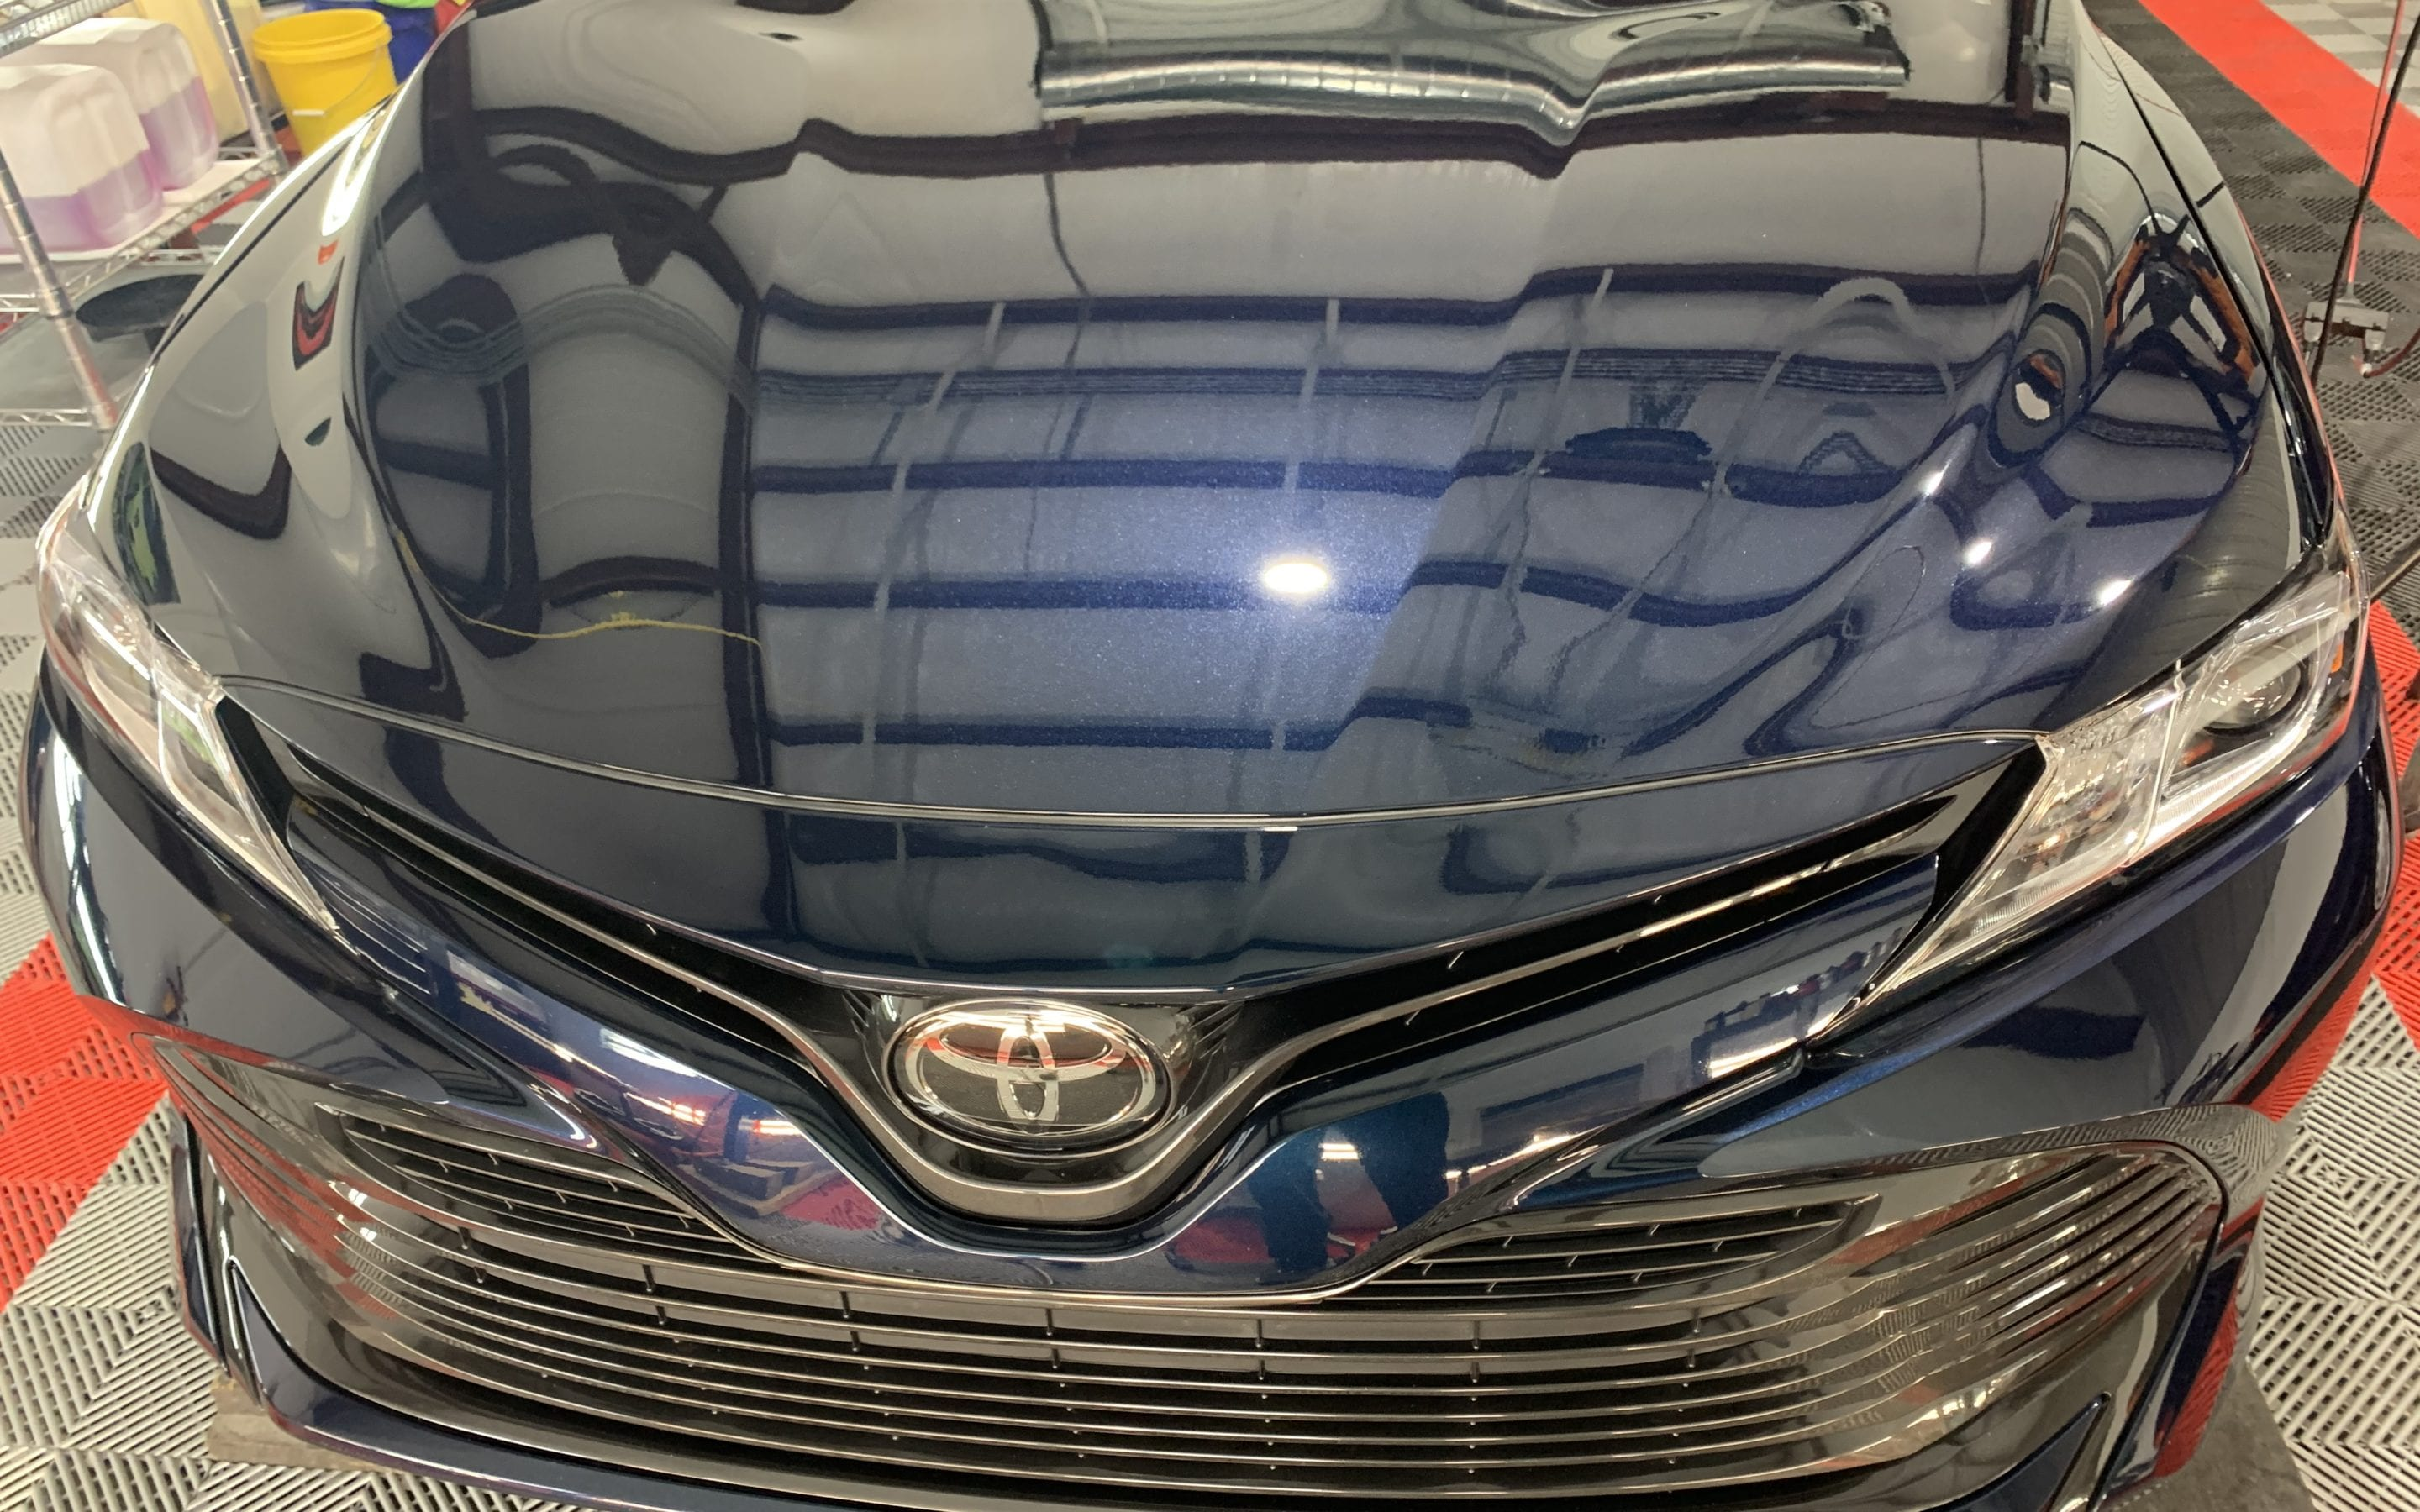 Ceramic Coating of a 2019 Toyota Camry